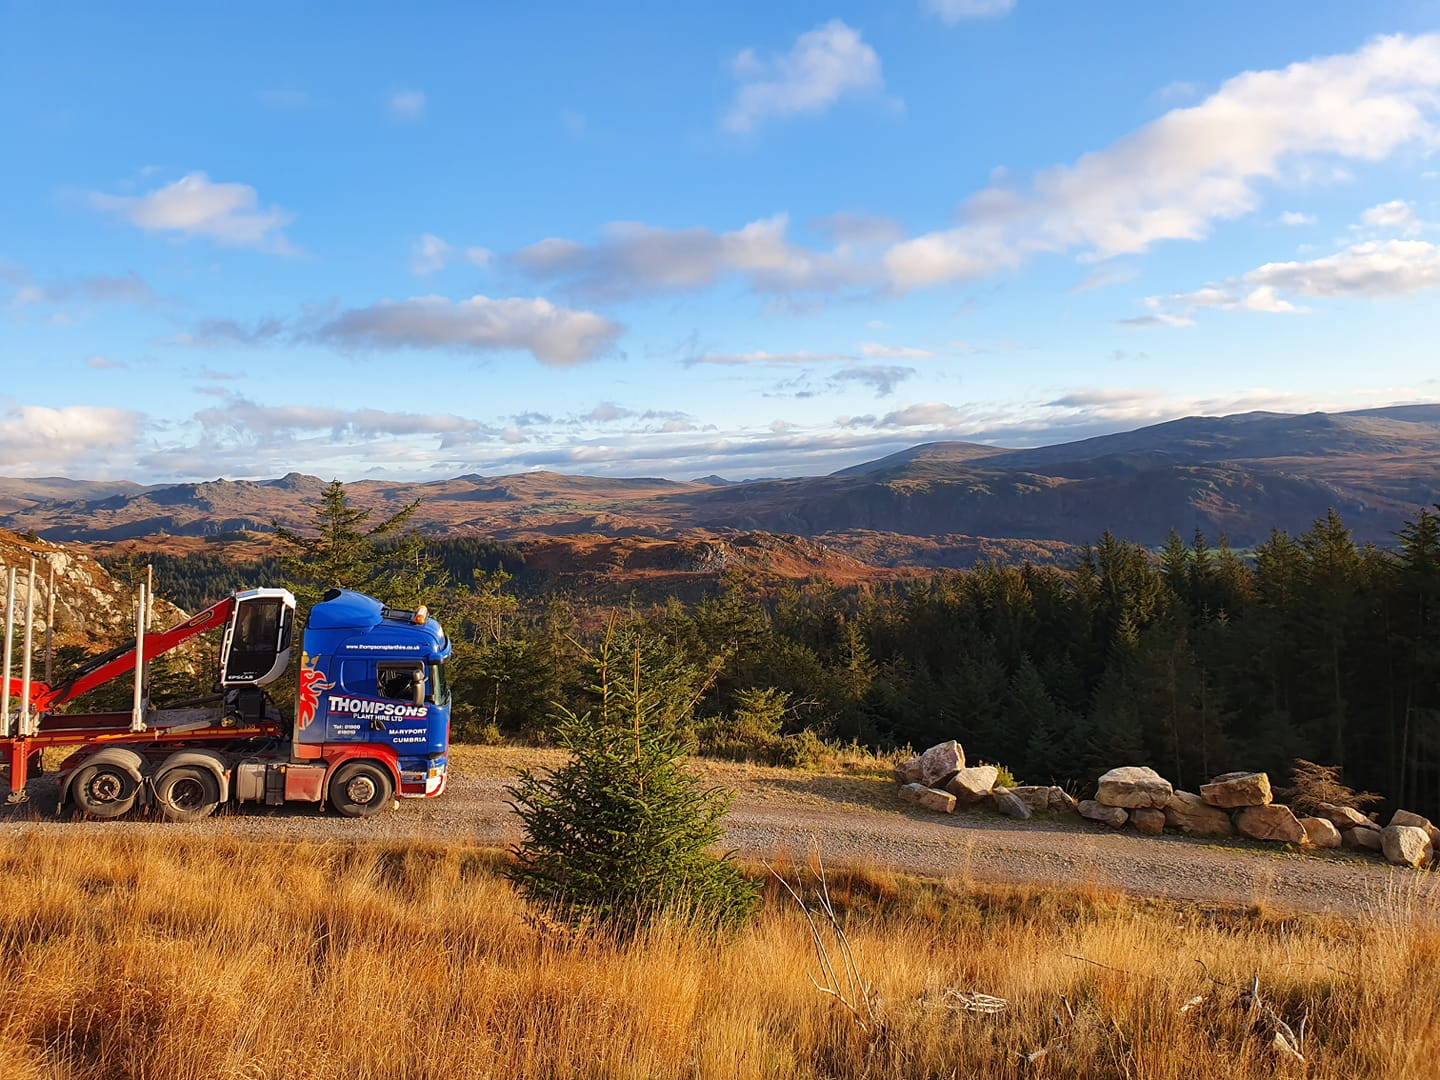 Thompsons Sania with Timber trailer with scenic view